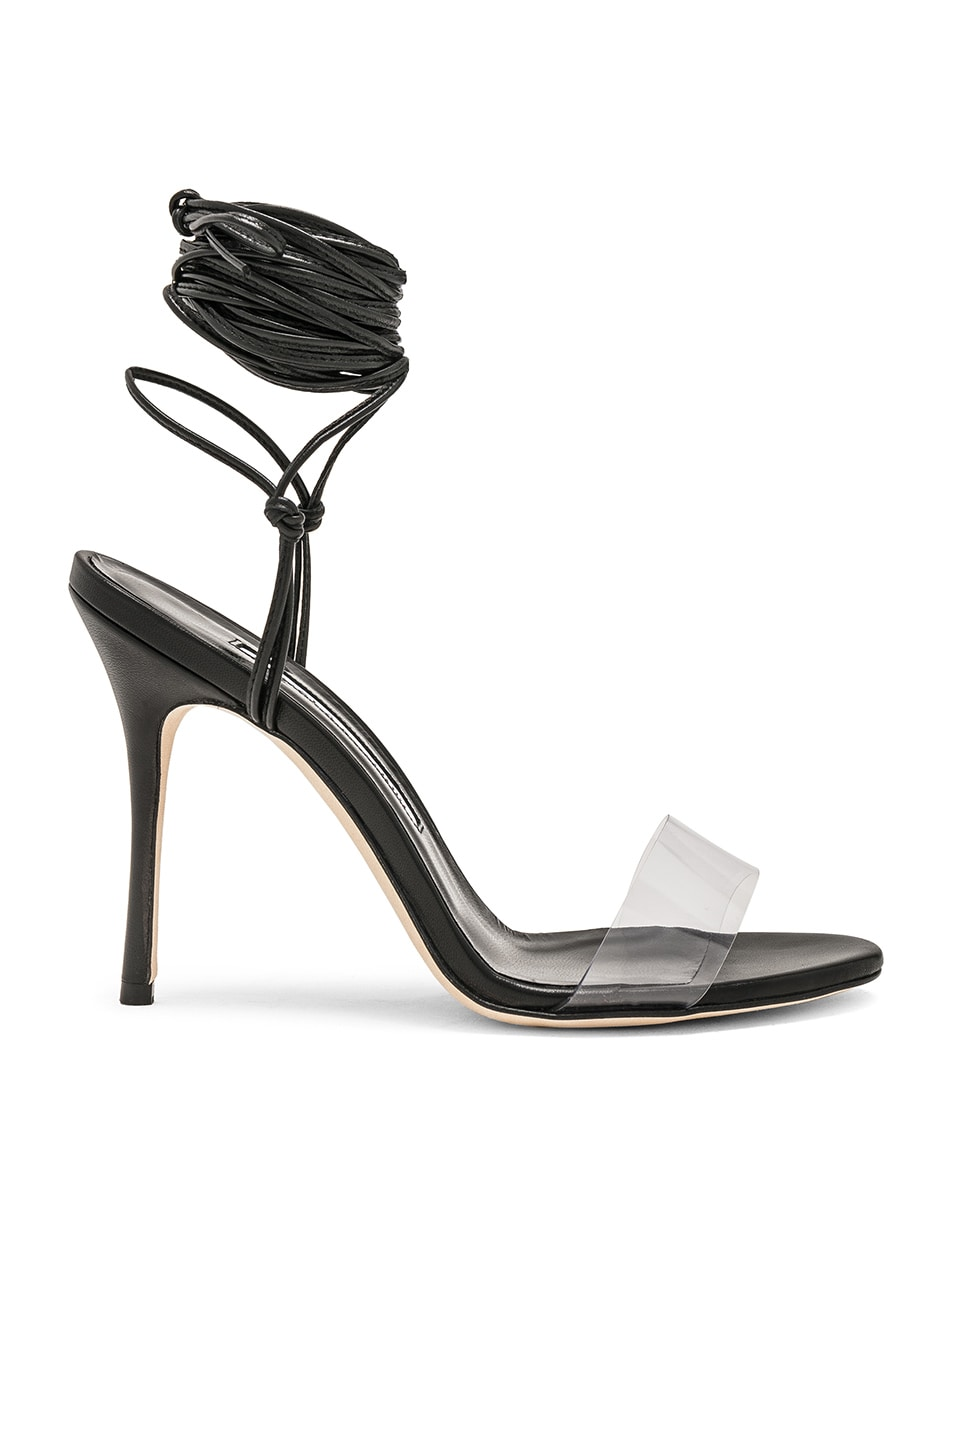 Image 1 of Manolo Blahnik Priscestro 105 Heel in Black & Clear